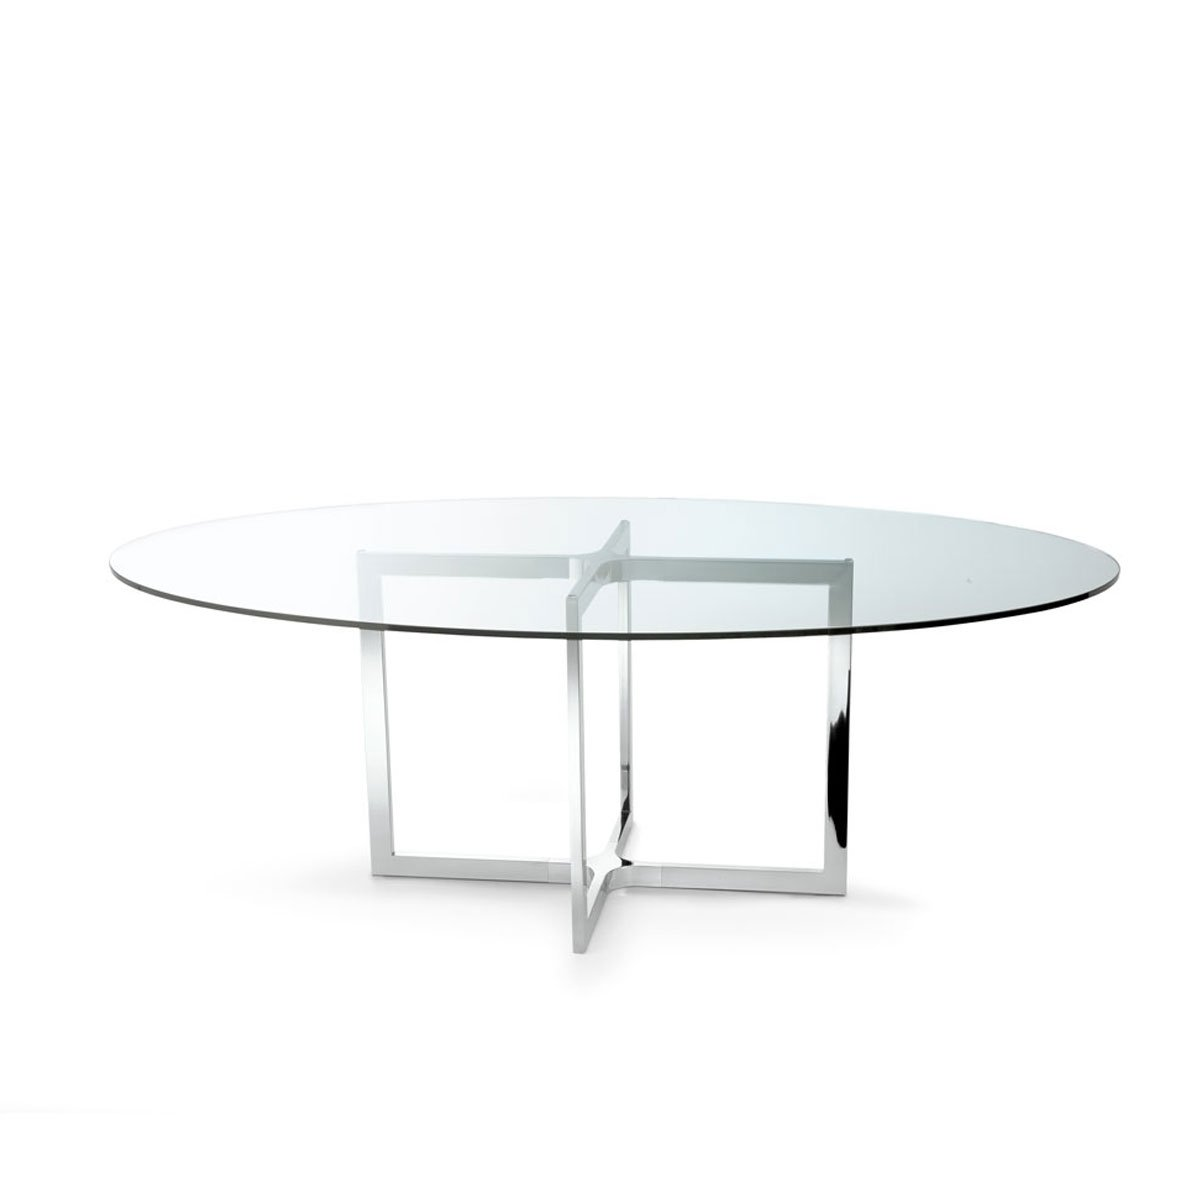 Raj 4 Glass And Metal Table By Gallotti Radice Klarity Glass Furniture